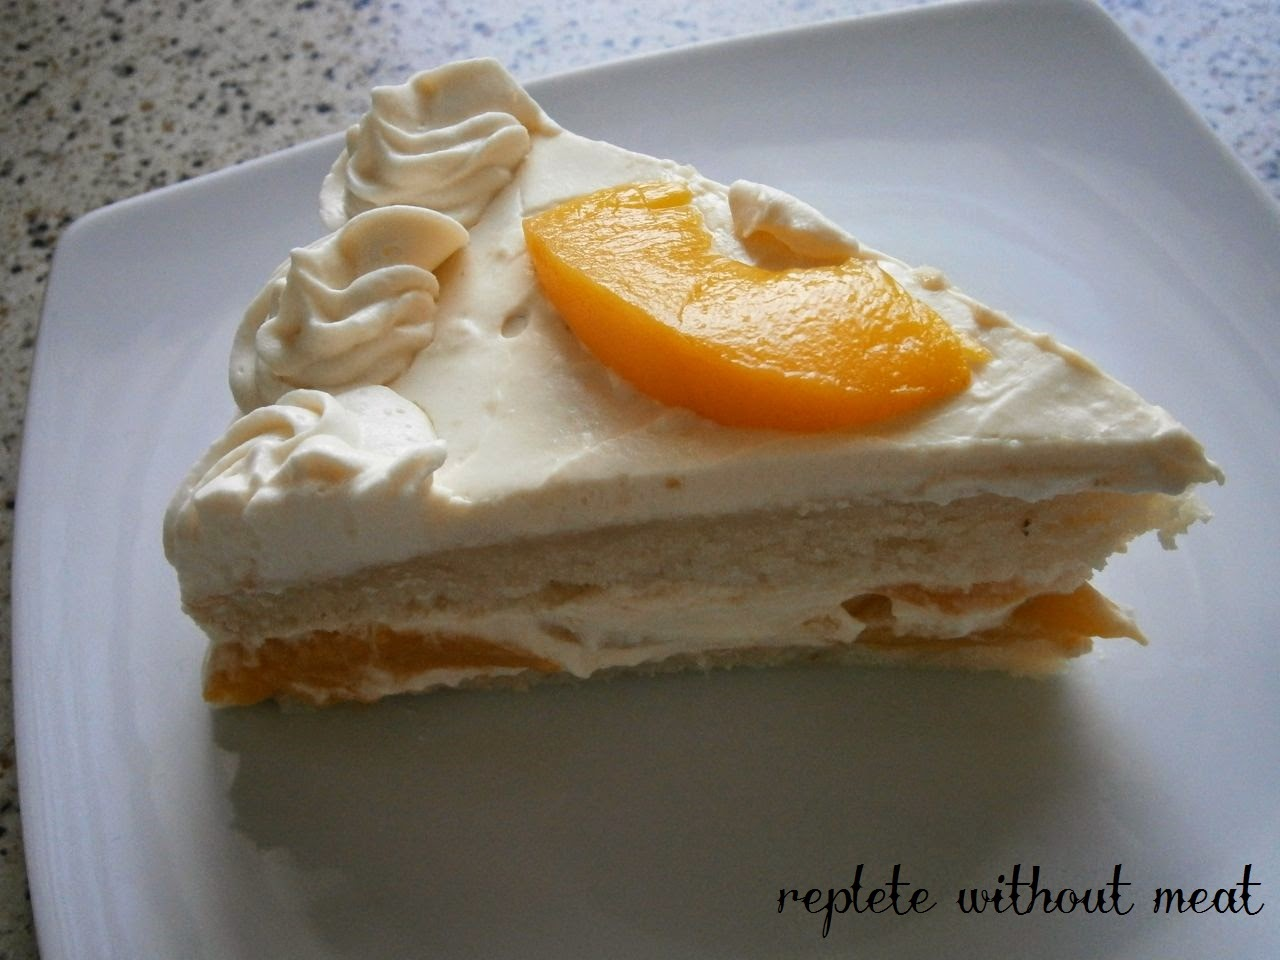 replete without meat pfirsichtorte mit mango maracuja sahnecreme eine fruchtig vegane ostertorte. Black Bedroom Furniture Sets. Home Design Ideas